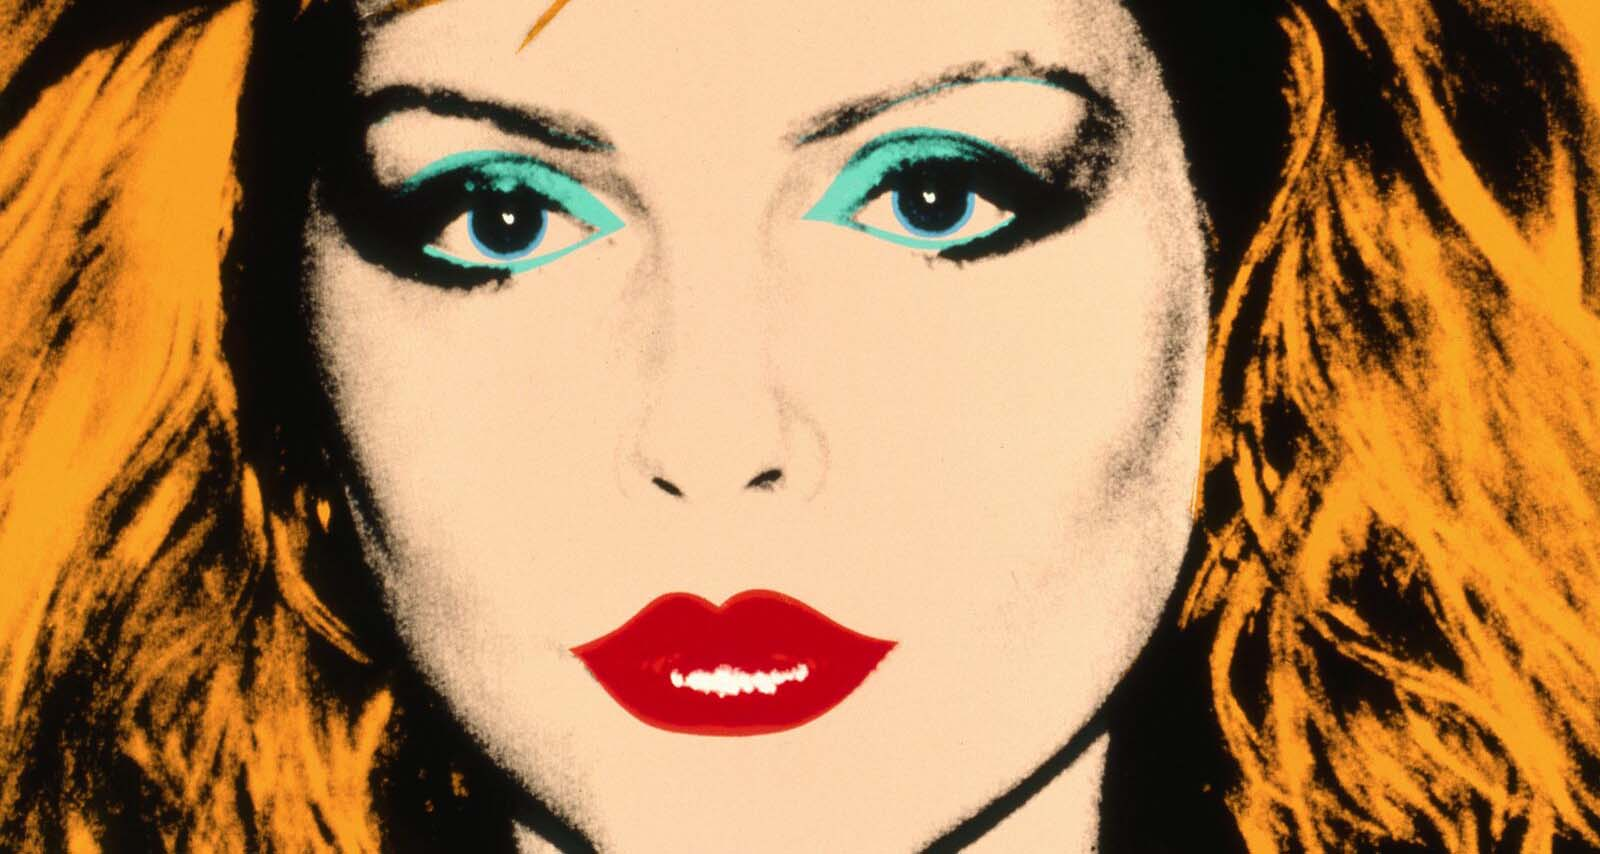 Andy Warhol: Portraits and Transamerica/n: Gender, Identity, Appearance Today Open at McNay